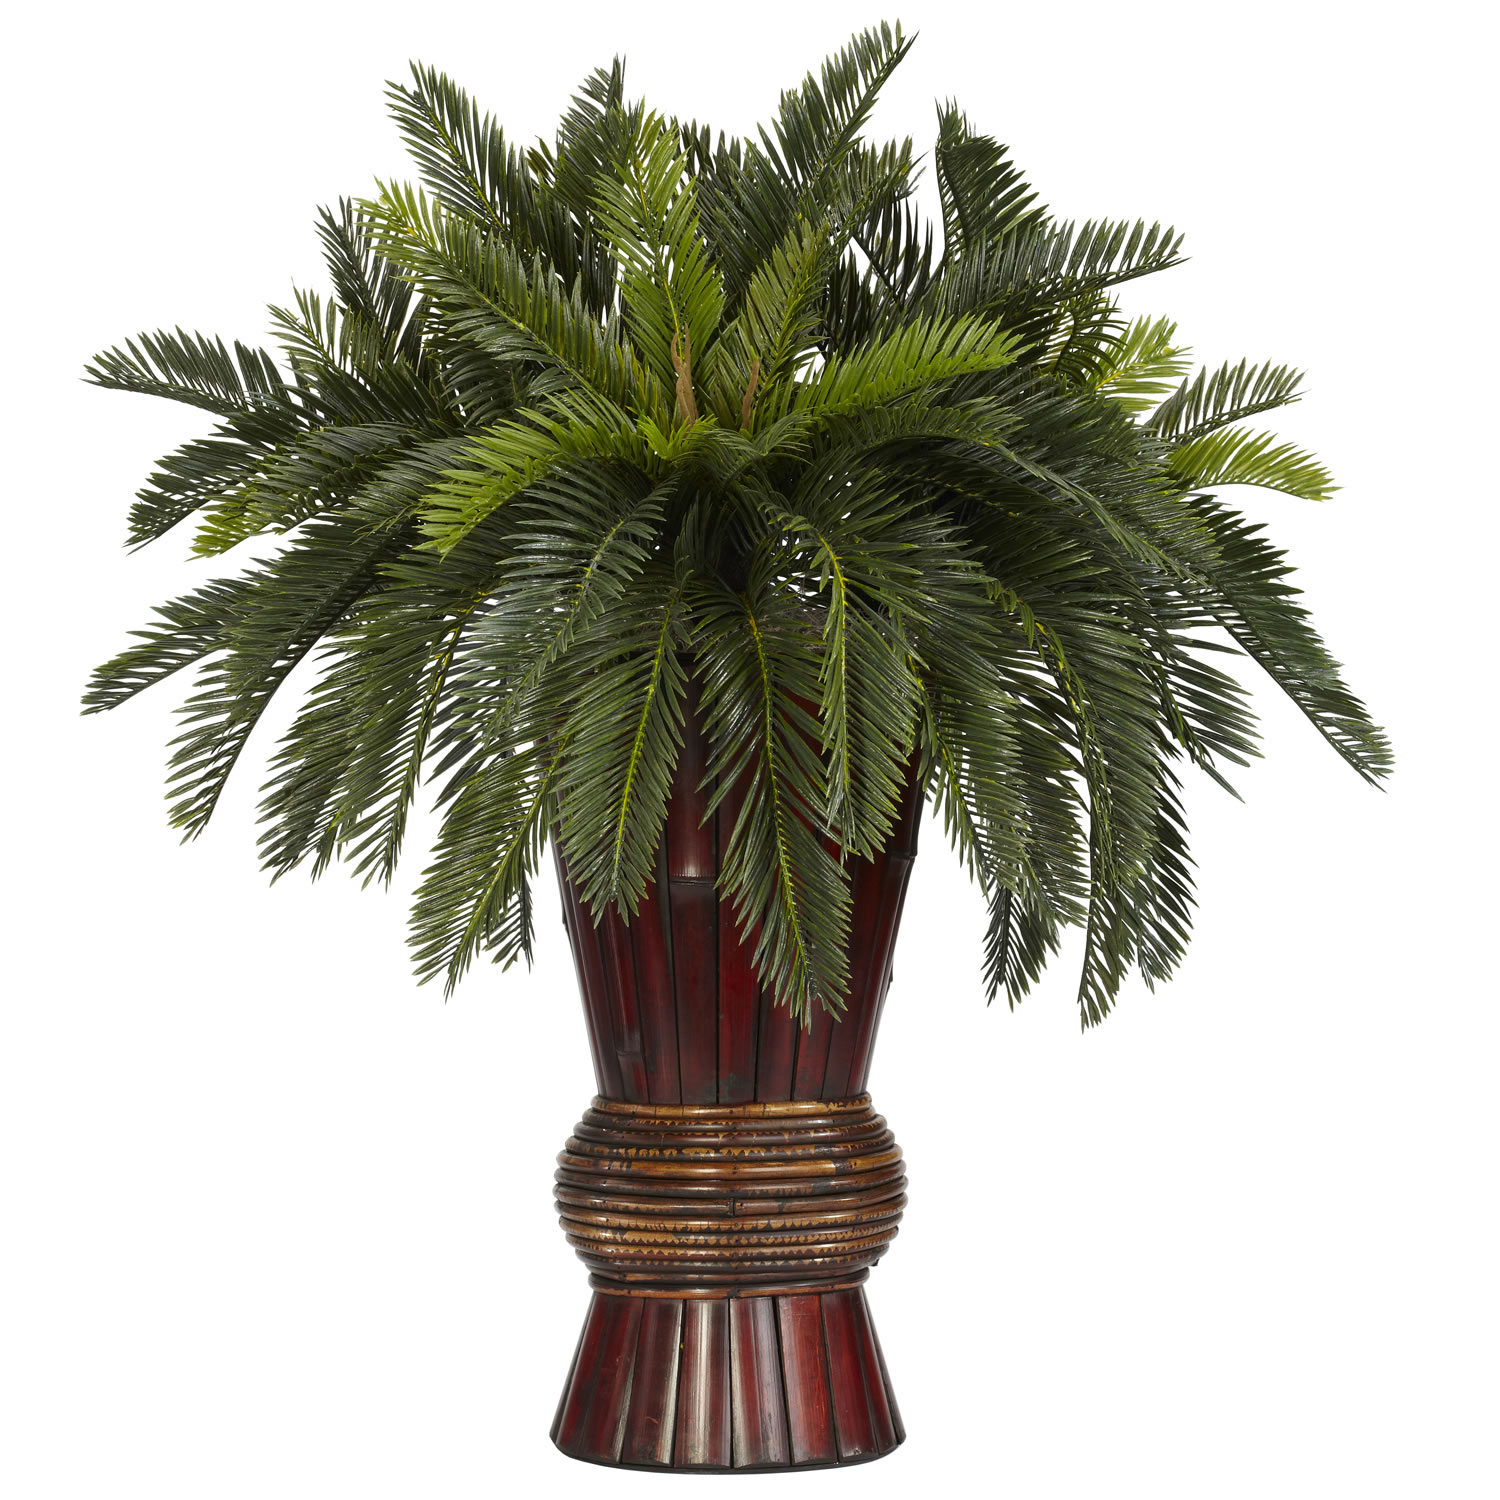 29 inch Cycas Palms in Bamboo Vase 6655